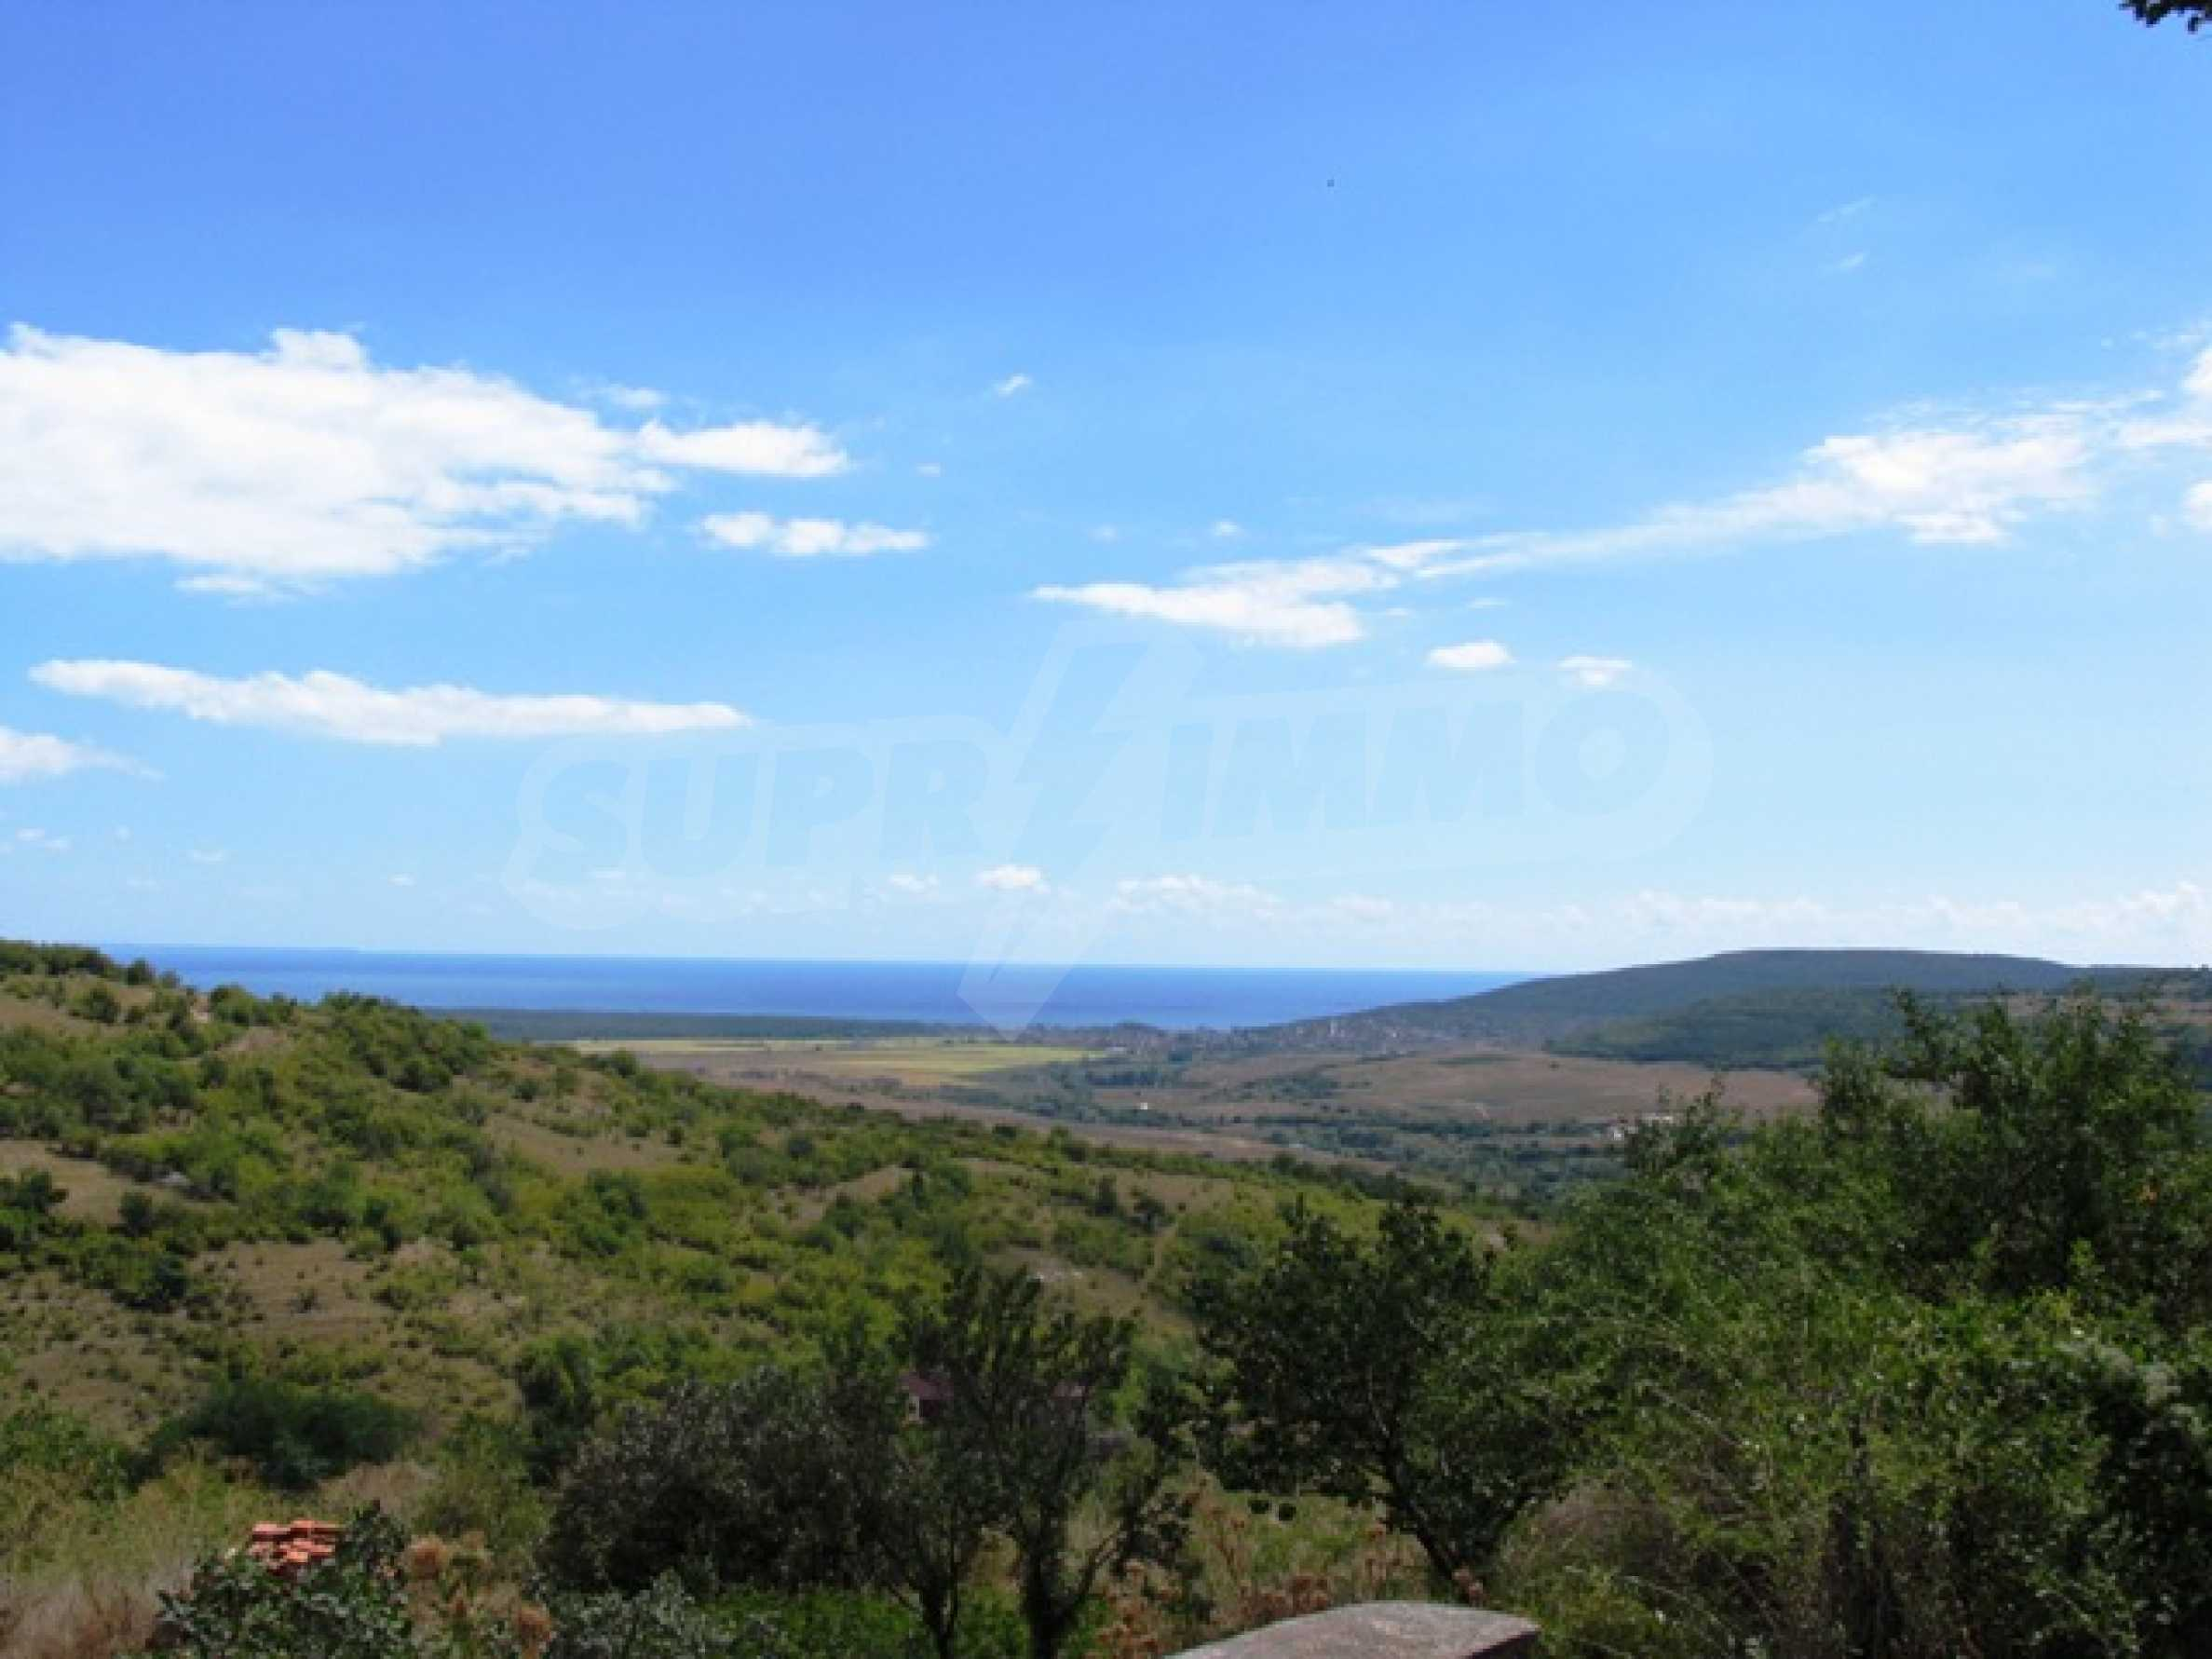 Excellent offer: plot of regulated land at a reasonable price and amazing sea view 30